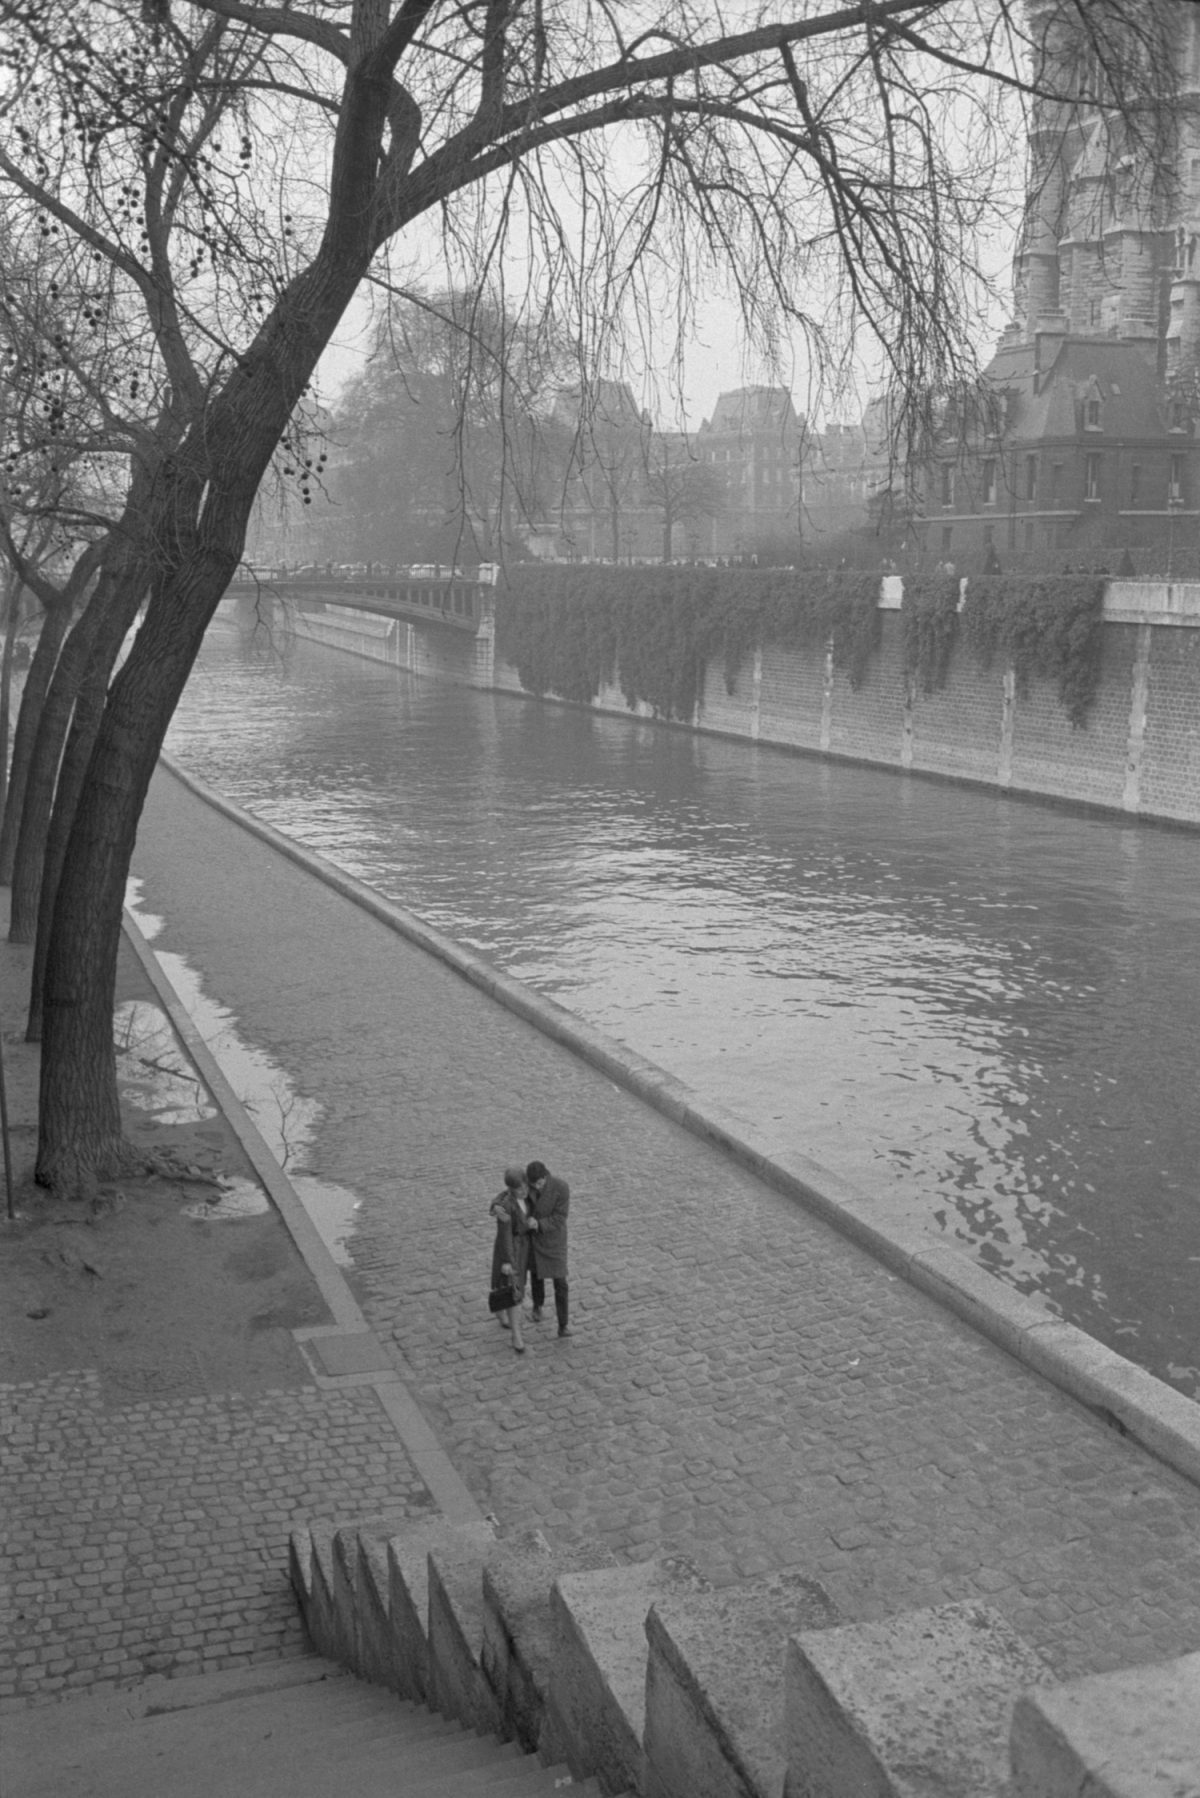 Toni Frissell.A couple walking along the Seine River. 1950s #toni frissell #black and white #vintage#photography#street photography#art#history #black and white photography #vintage photography#1950s